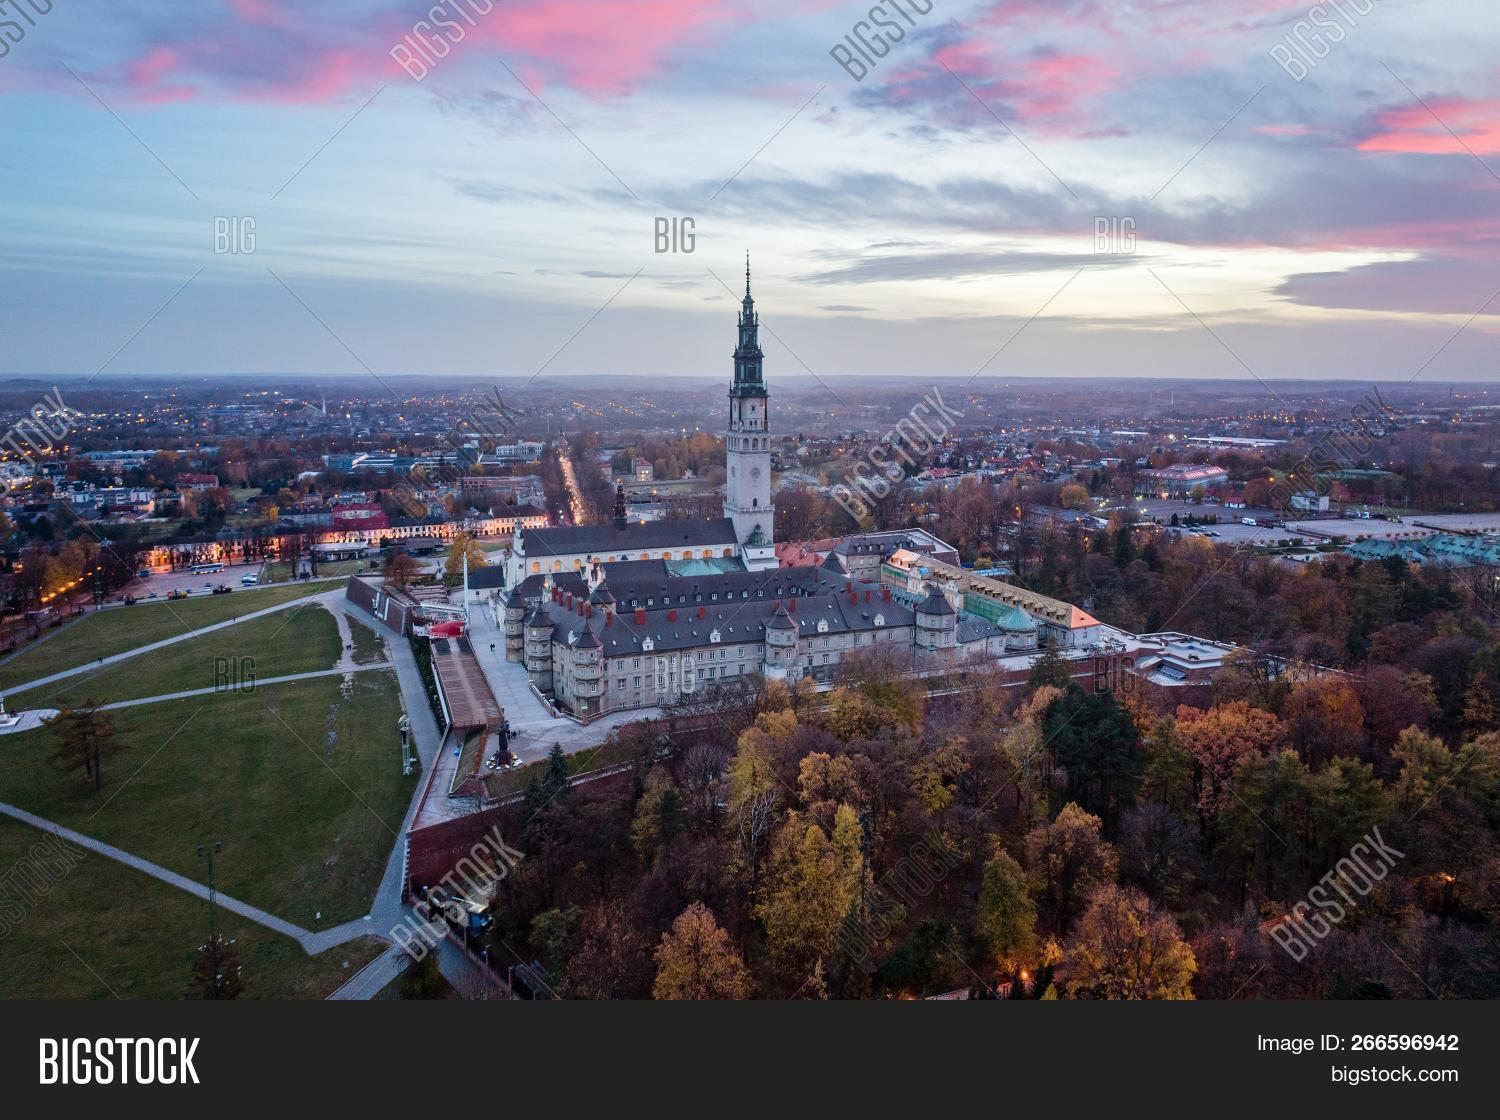 Czestochowa,Gora,Jasna,Luminous,Mount,Poland,Silesia,aerial,architecture,building,catholic,catholicism,church,city,drone,europe,evening,historic,landmark,monastery,night,pilgrimage,religion,sanctuary,sky,tower,travel